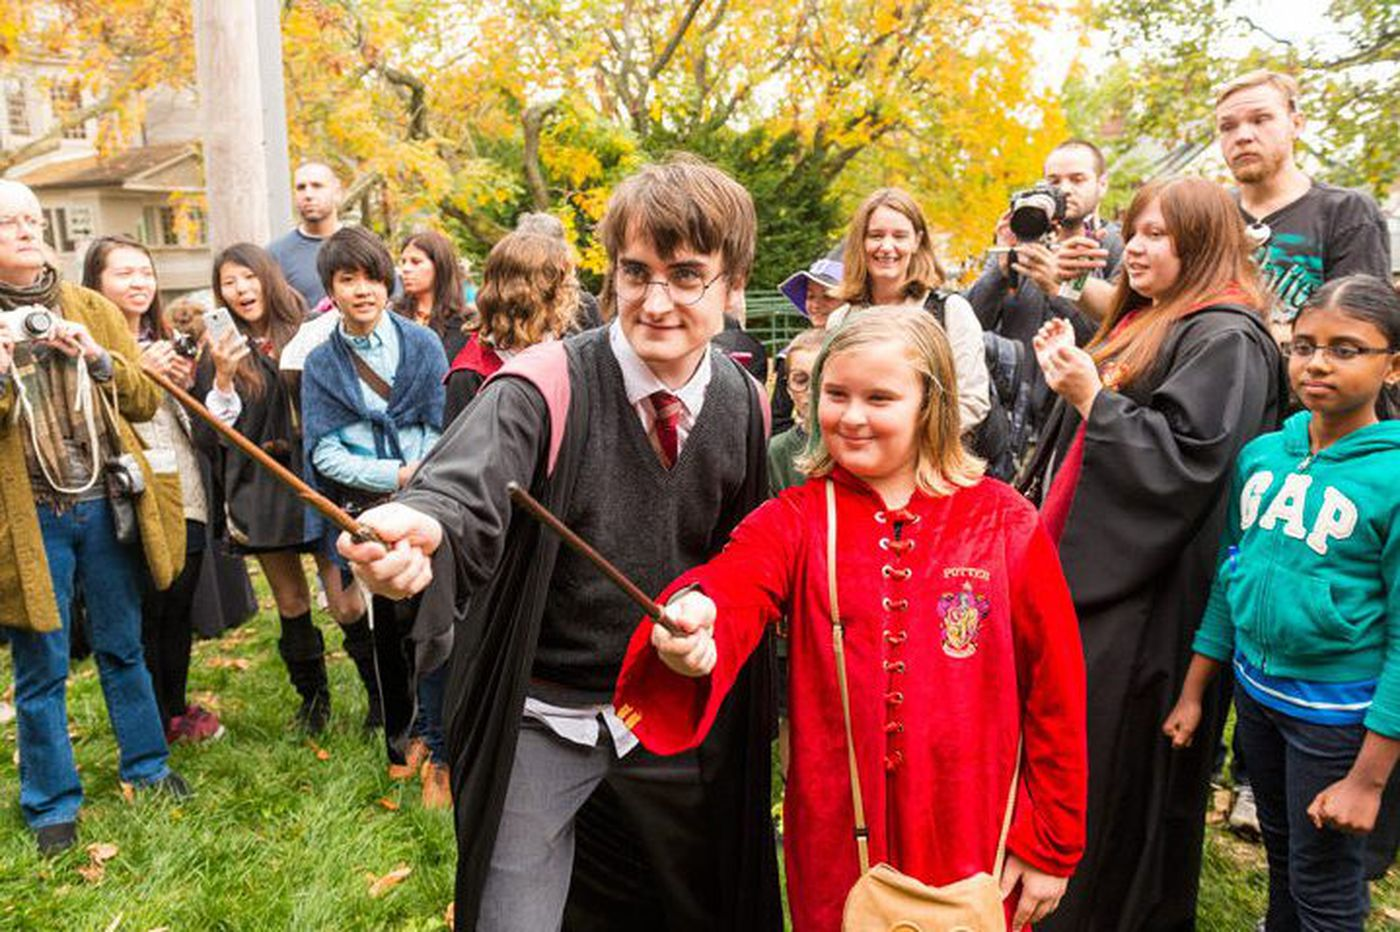 Here's what is replacing Chestnut Hill's Harry Potter festival